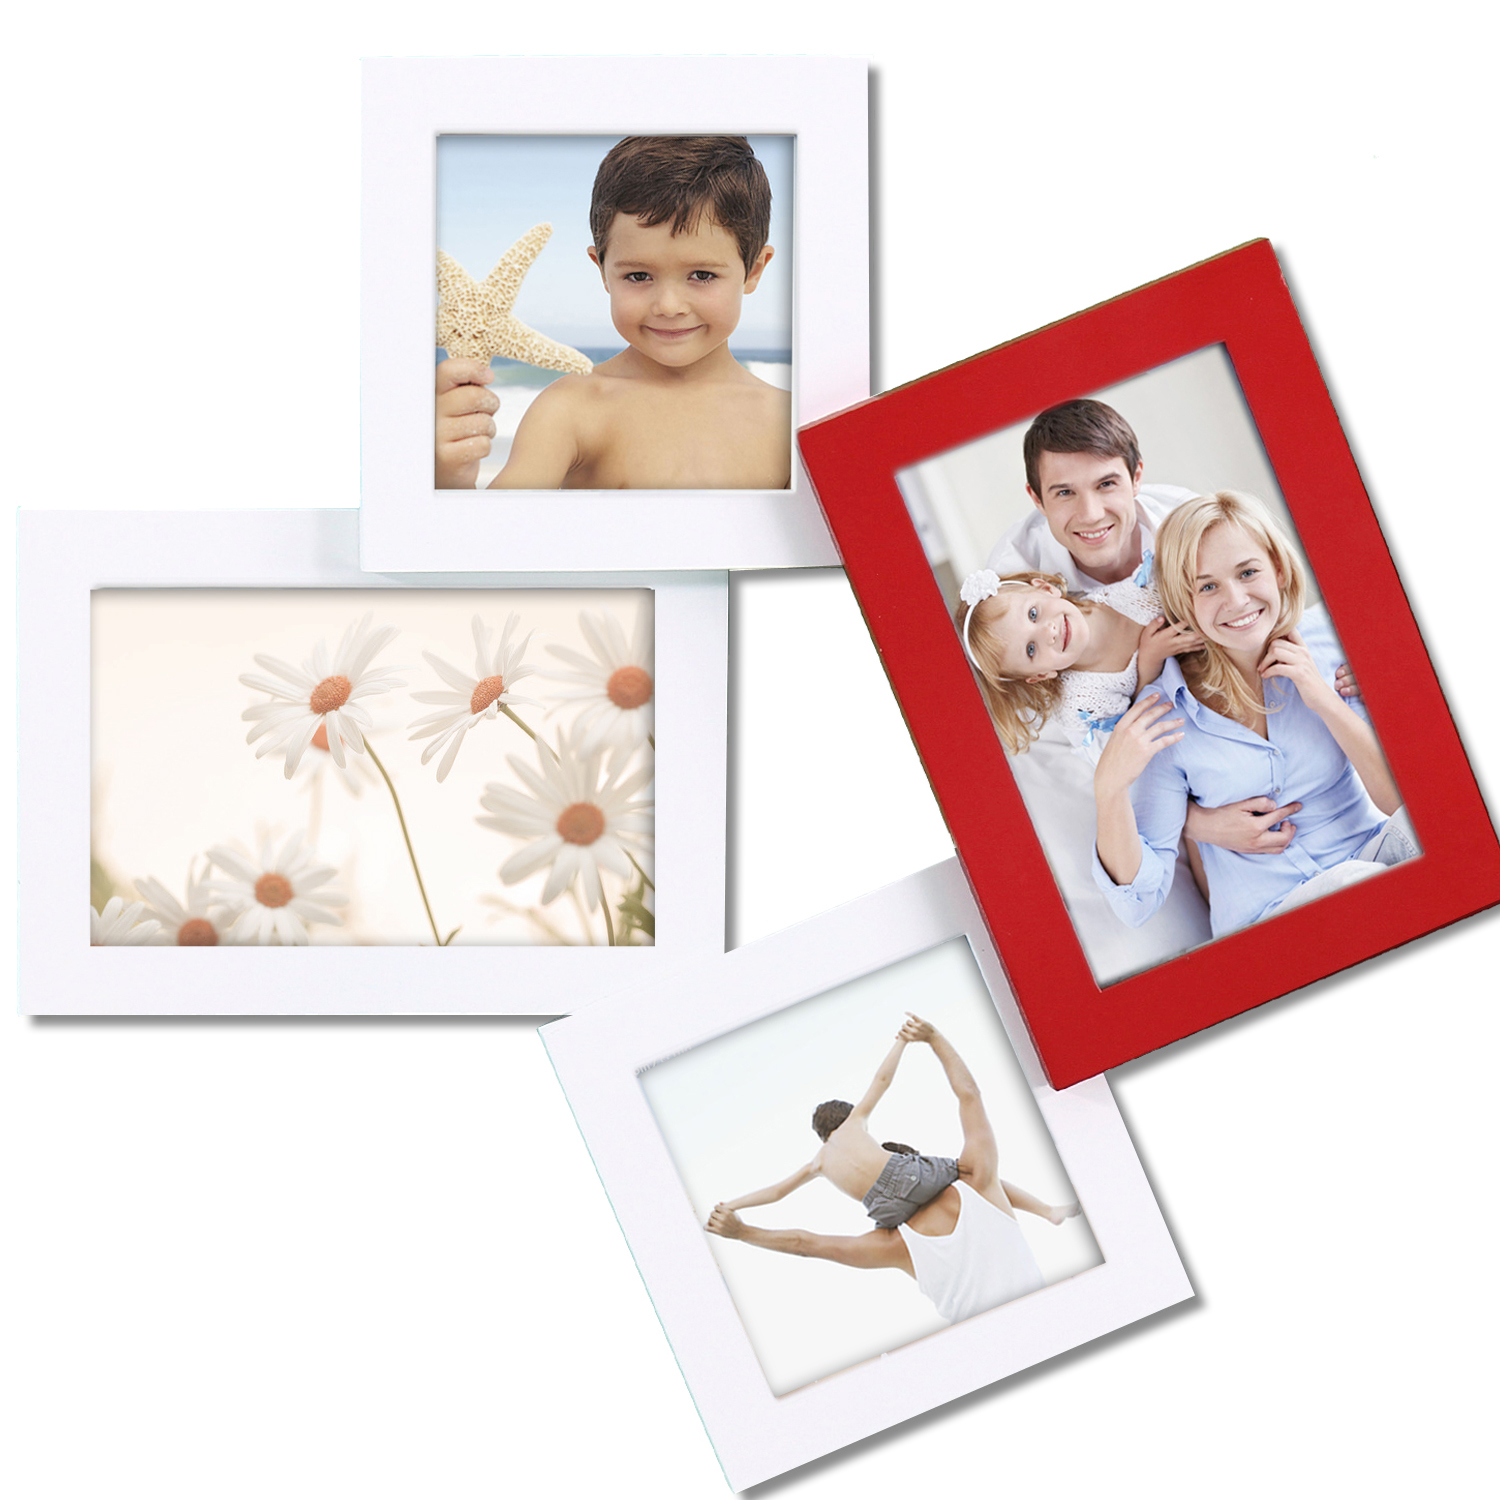 Adeco  PF0316  4-Opening Wood Wall Hanging Collage Photo Picture Frame - Holds Two 4x6 and Two 4x4 Inch Photos, White and Red at Sears.com